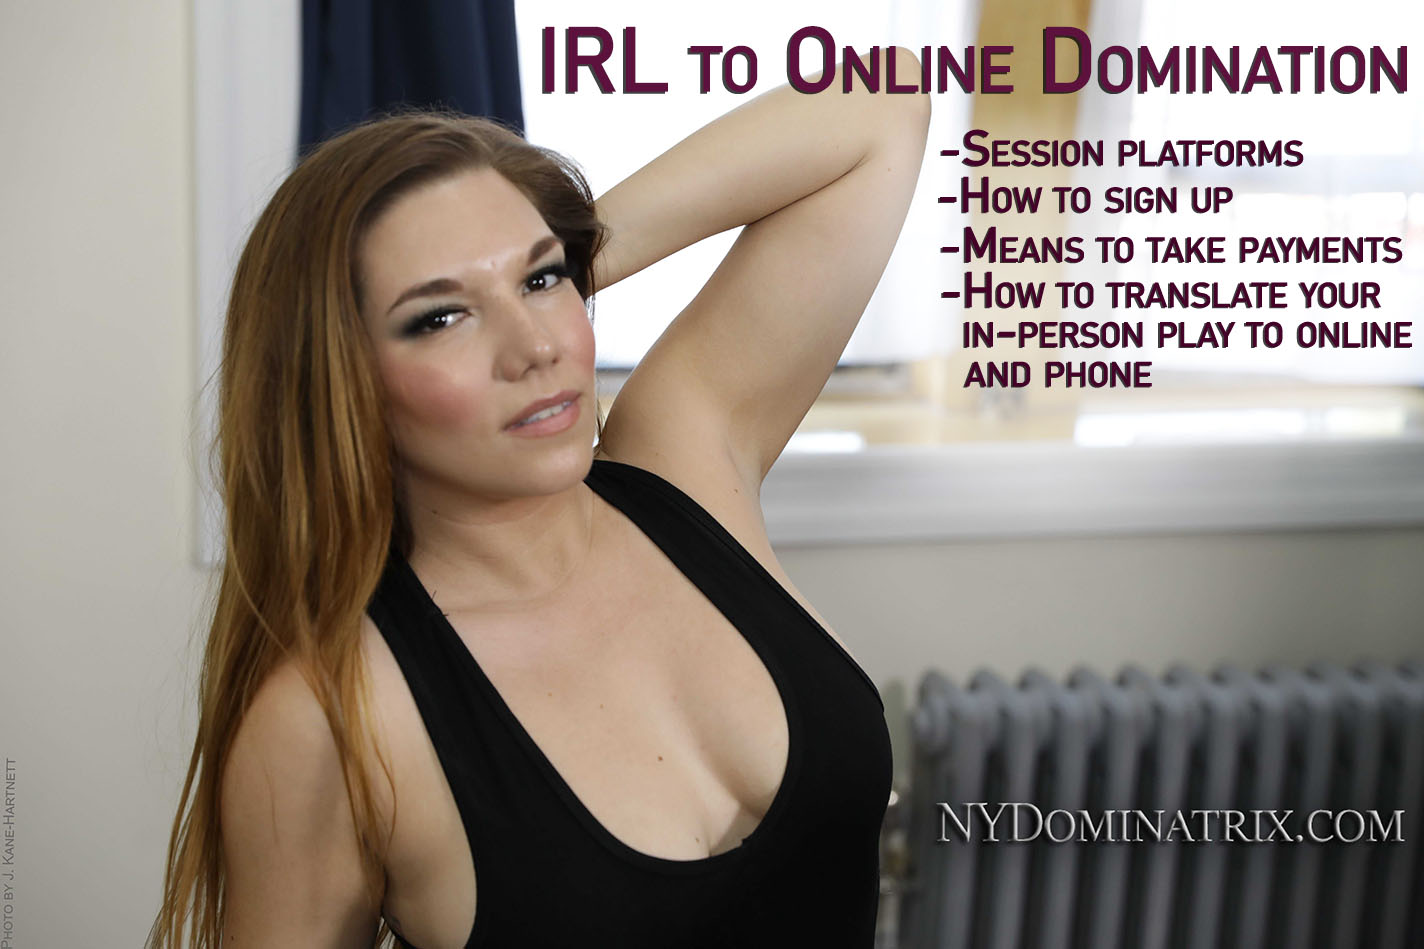 Online Classes - IRL to Online Domination